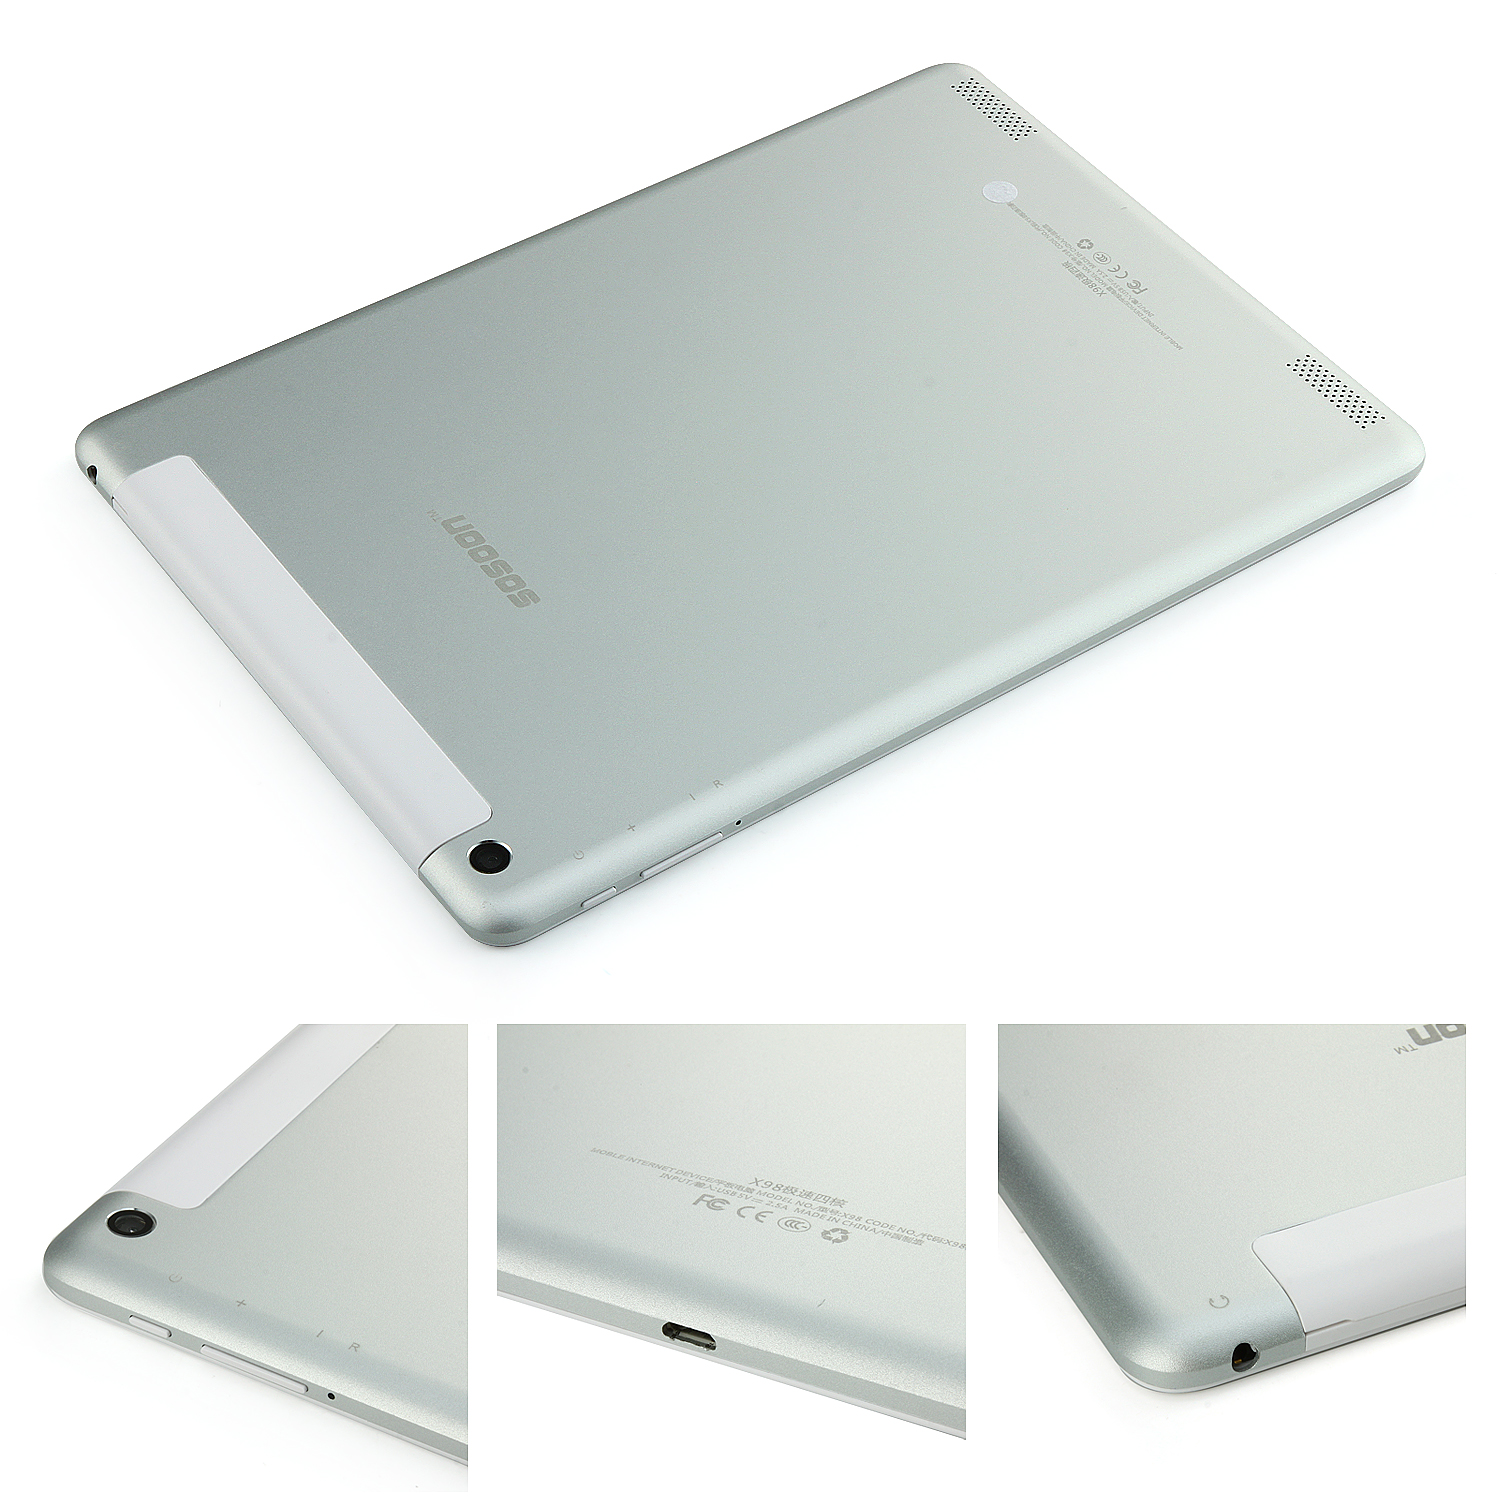 SOSOON X98 3G Tablet PC 9.7 Inch Quad Core MTK8382 Android 4.2 IPS 1GB 16GB Silver